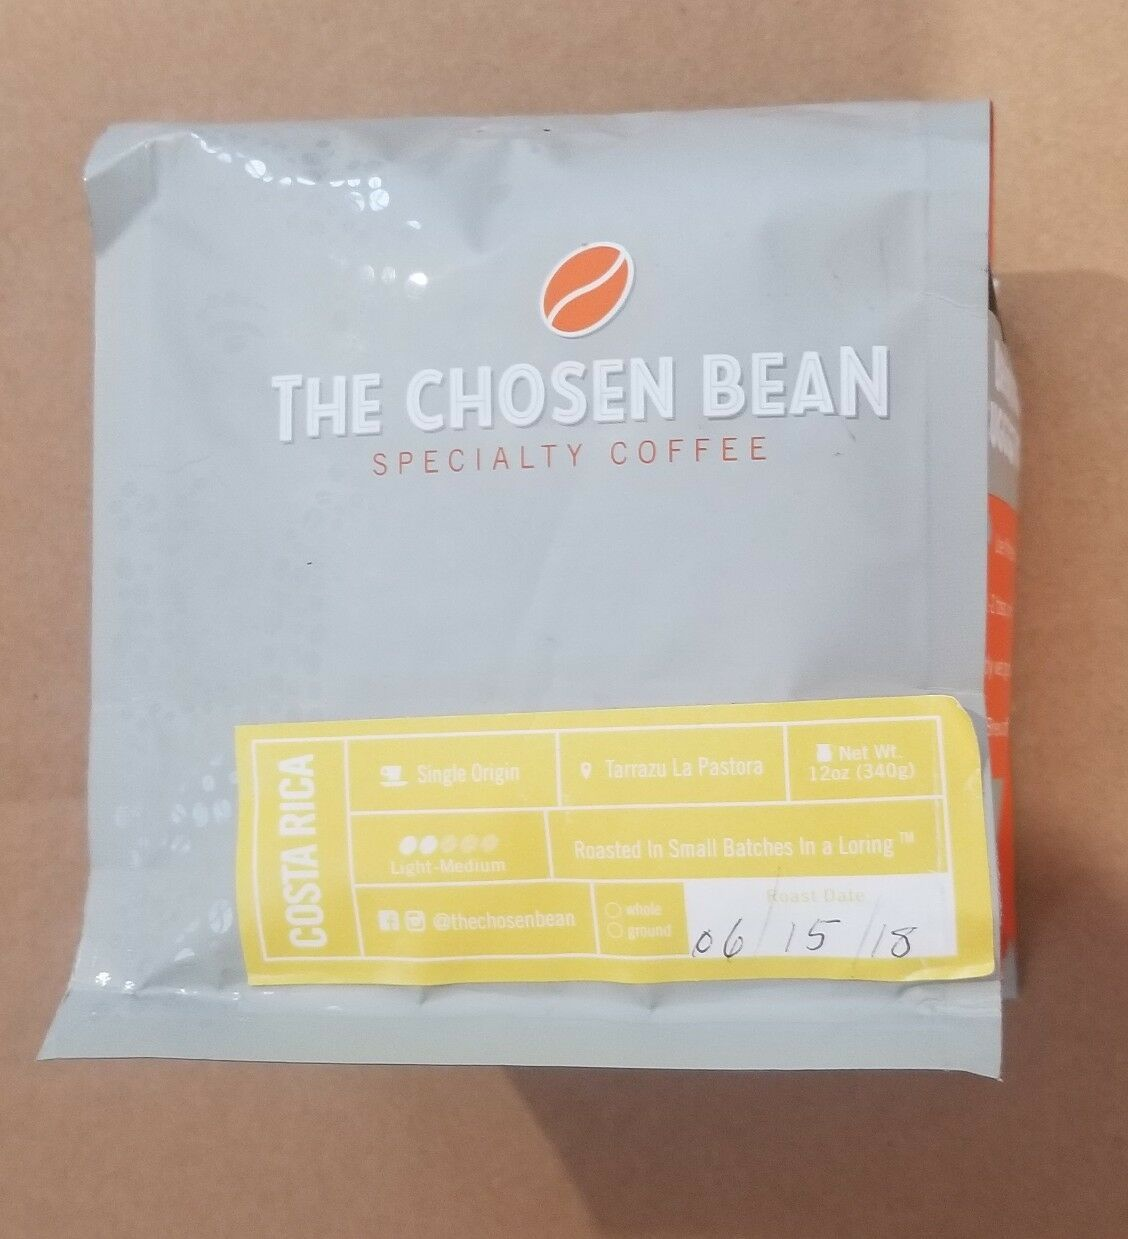 Details about THE CHOSEN BEAN Specialty Coffee COSTA RICA